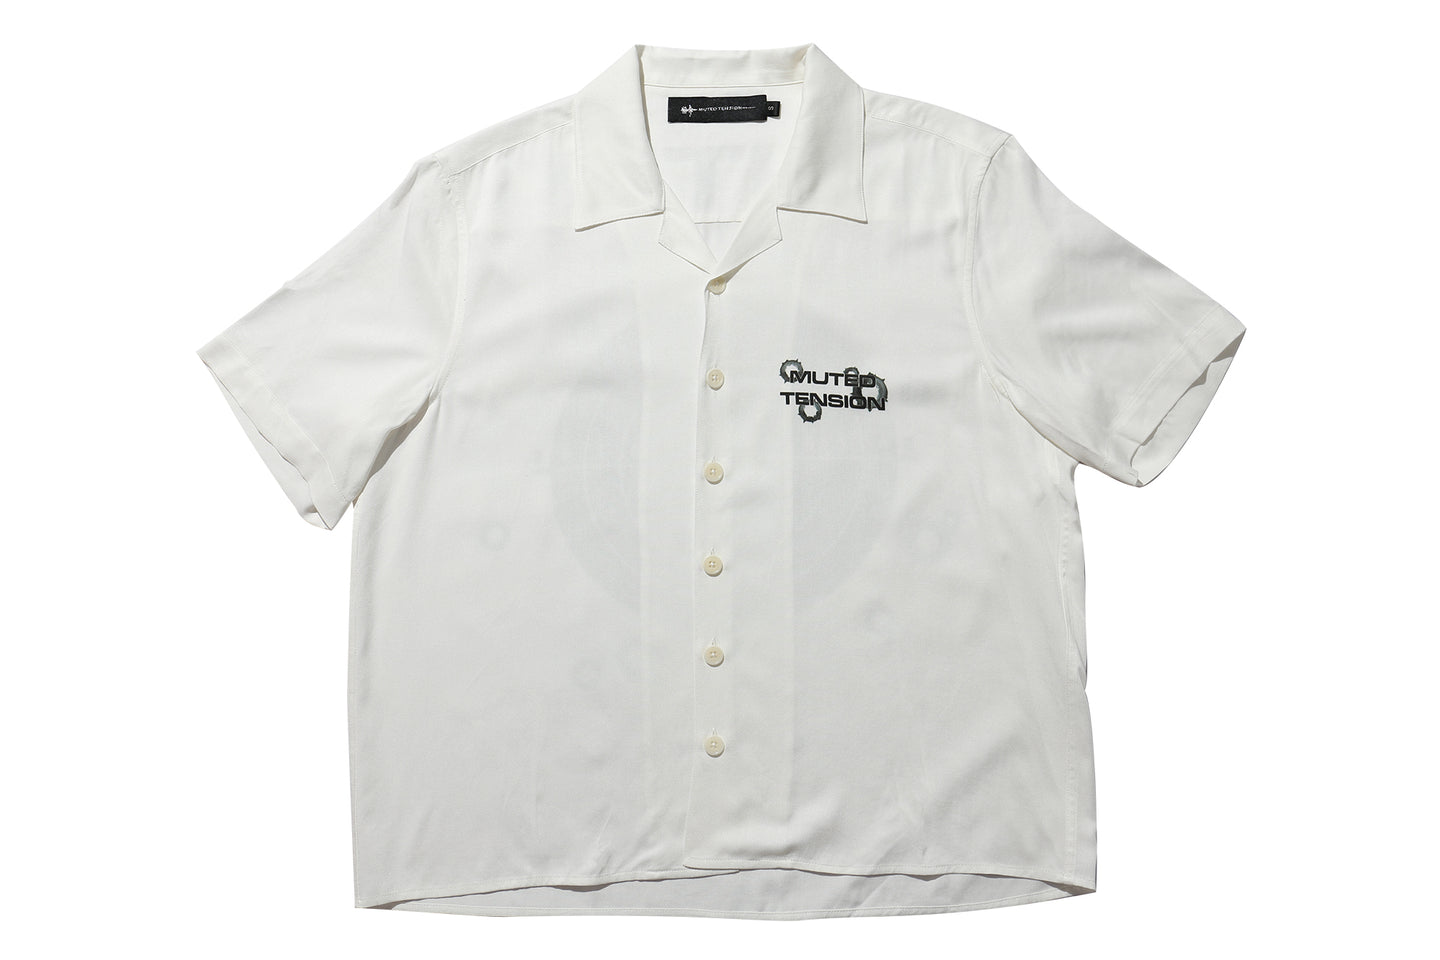 Muted Tension Target Practice Short Sleeve Camp Shirt